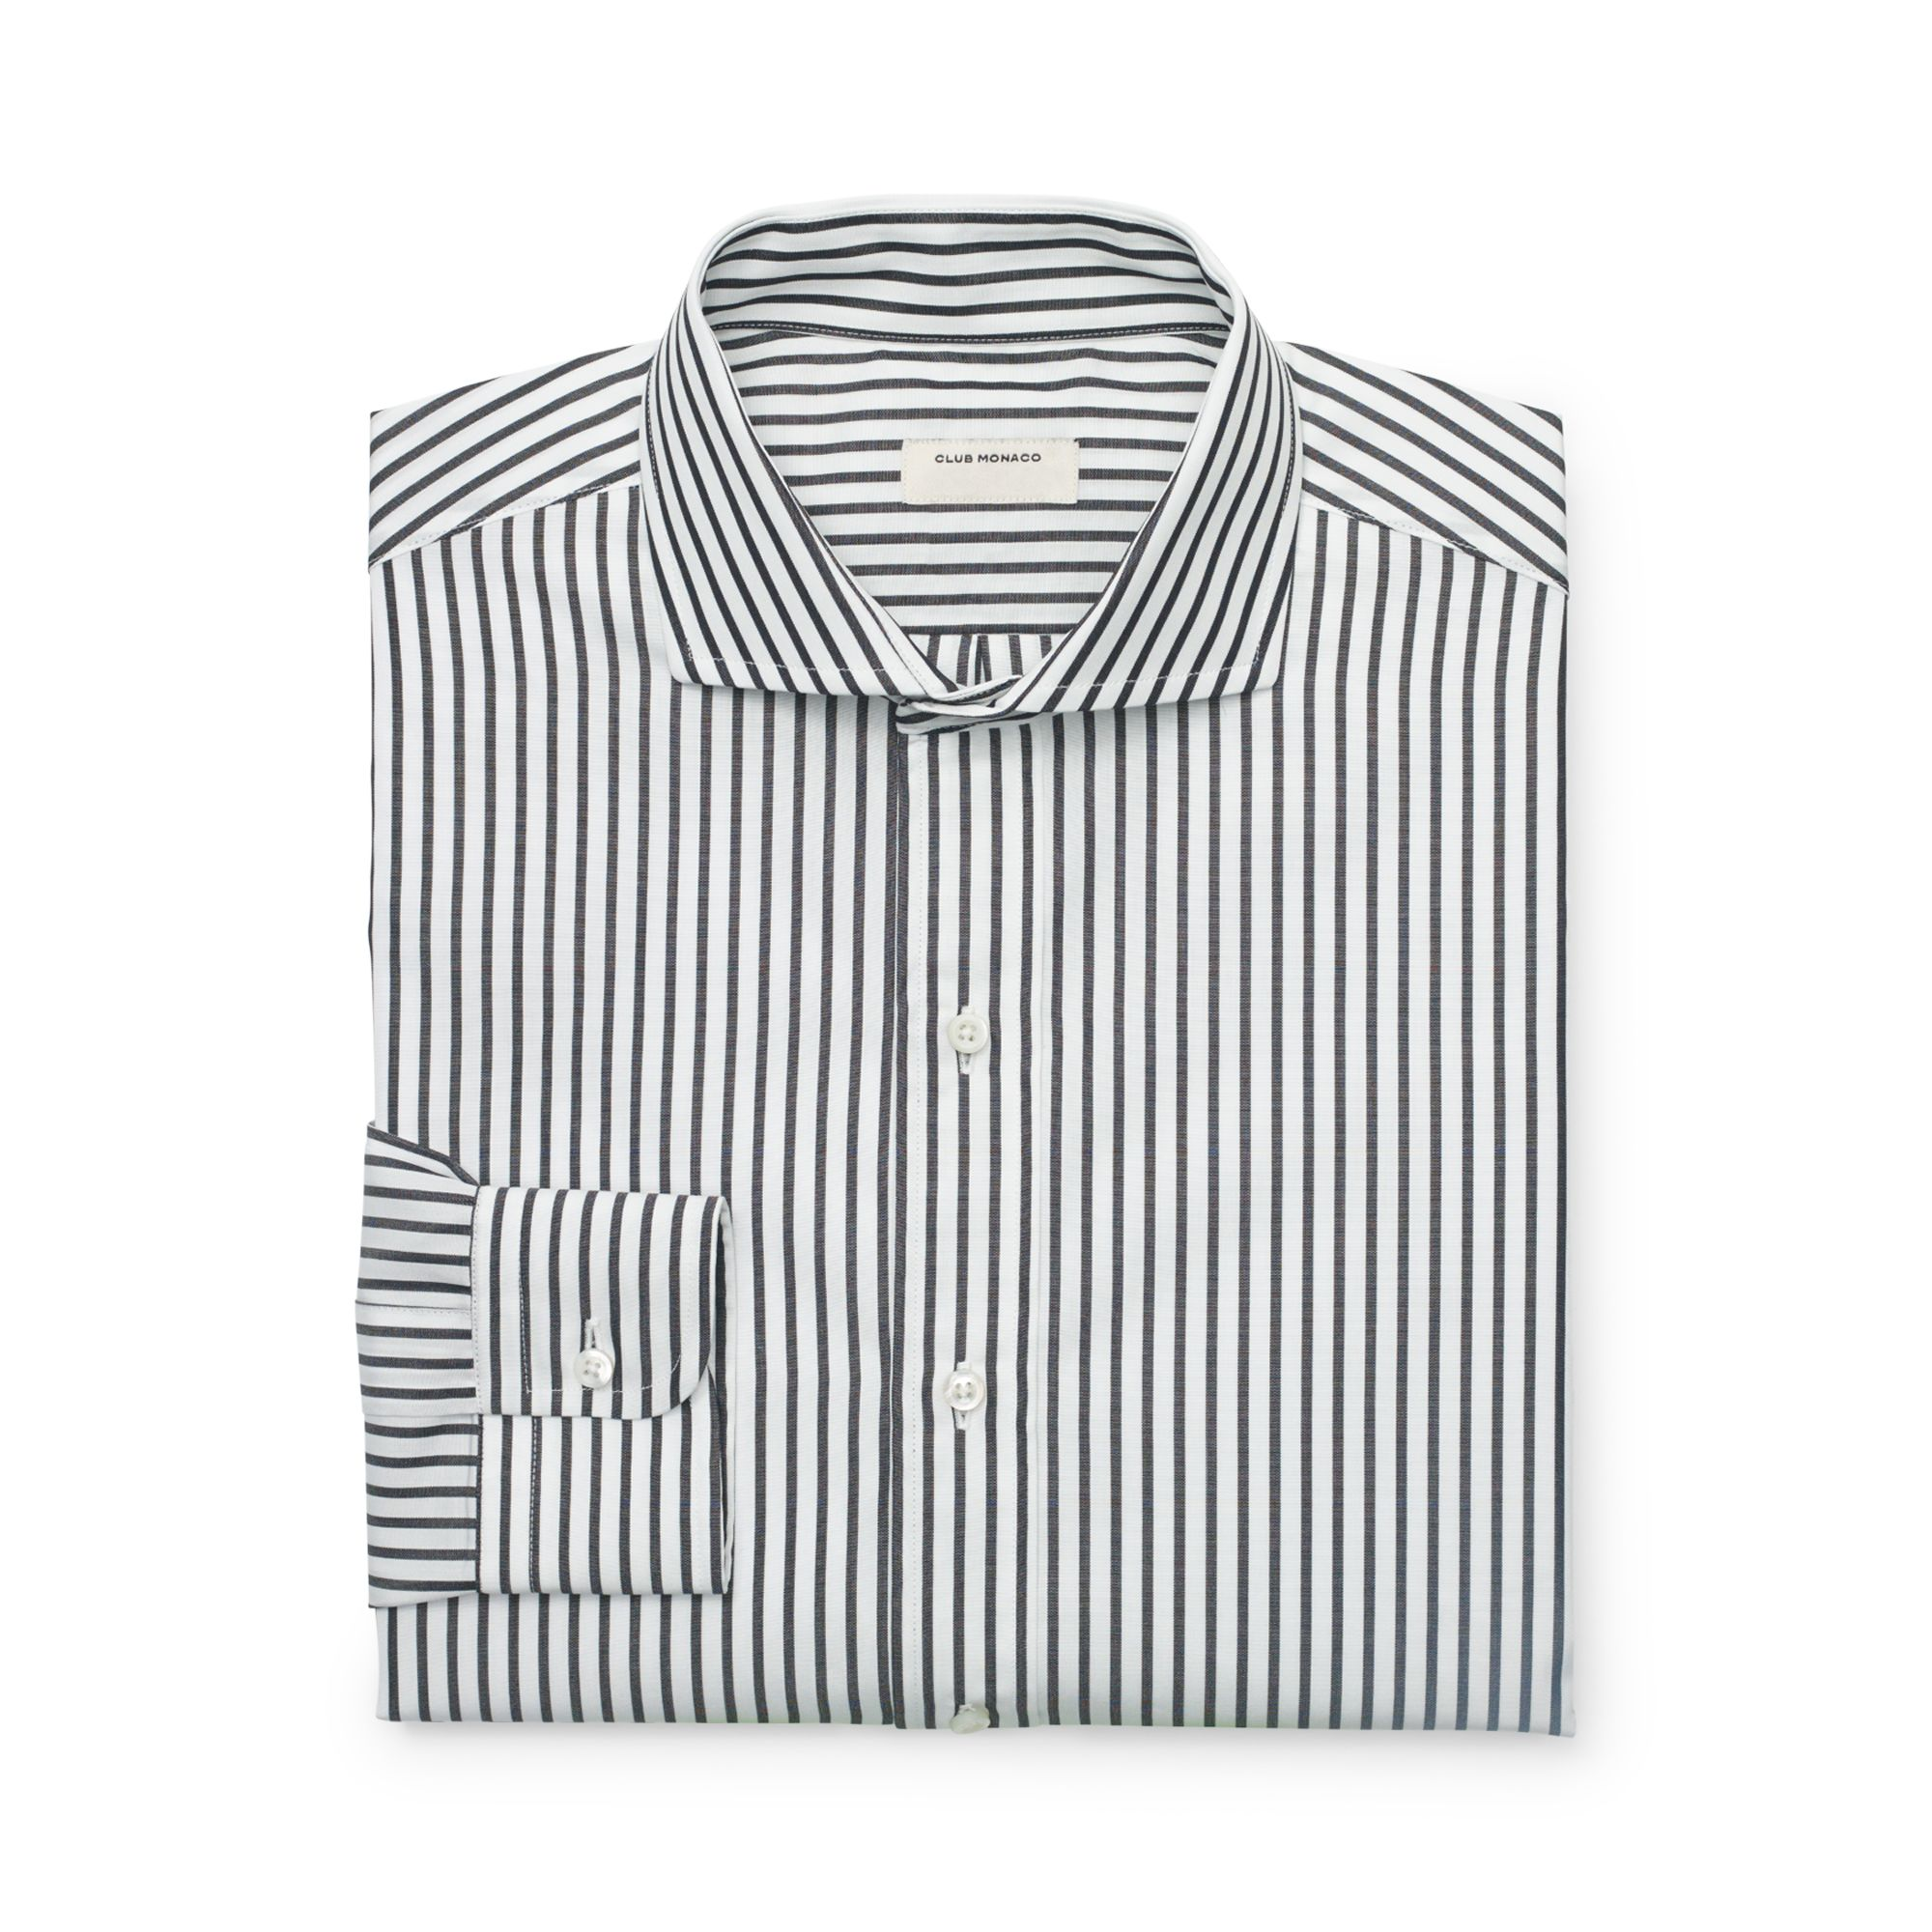 Lyst Club Monaco Made In The Usa Dress Shirt In Black For Men